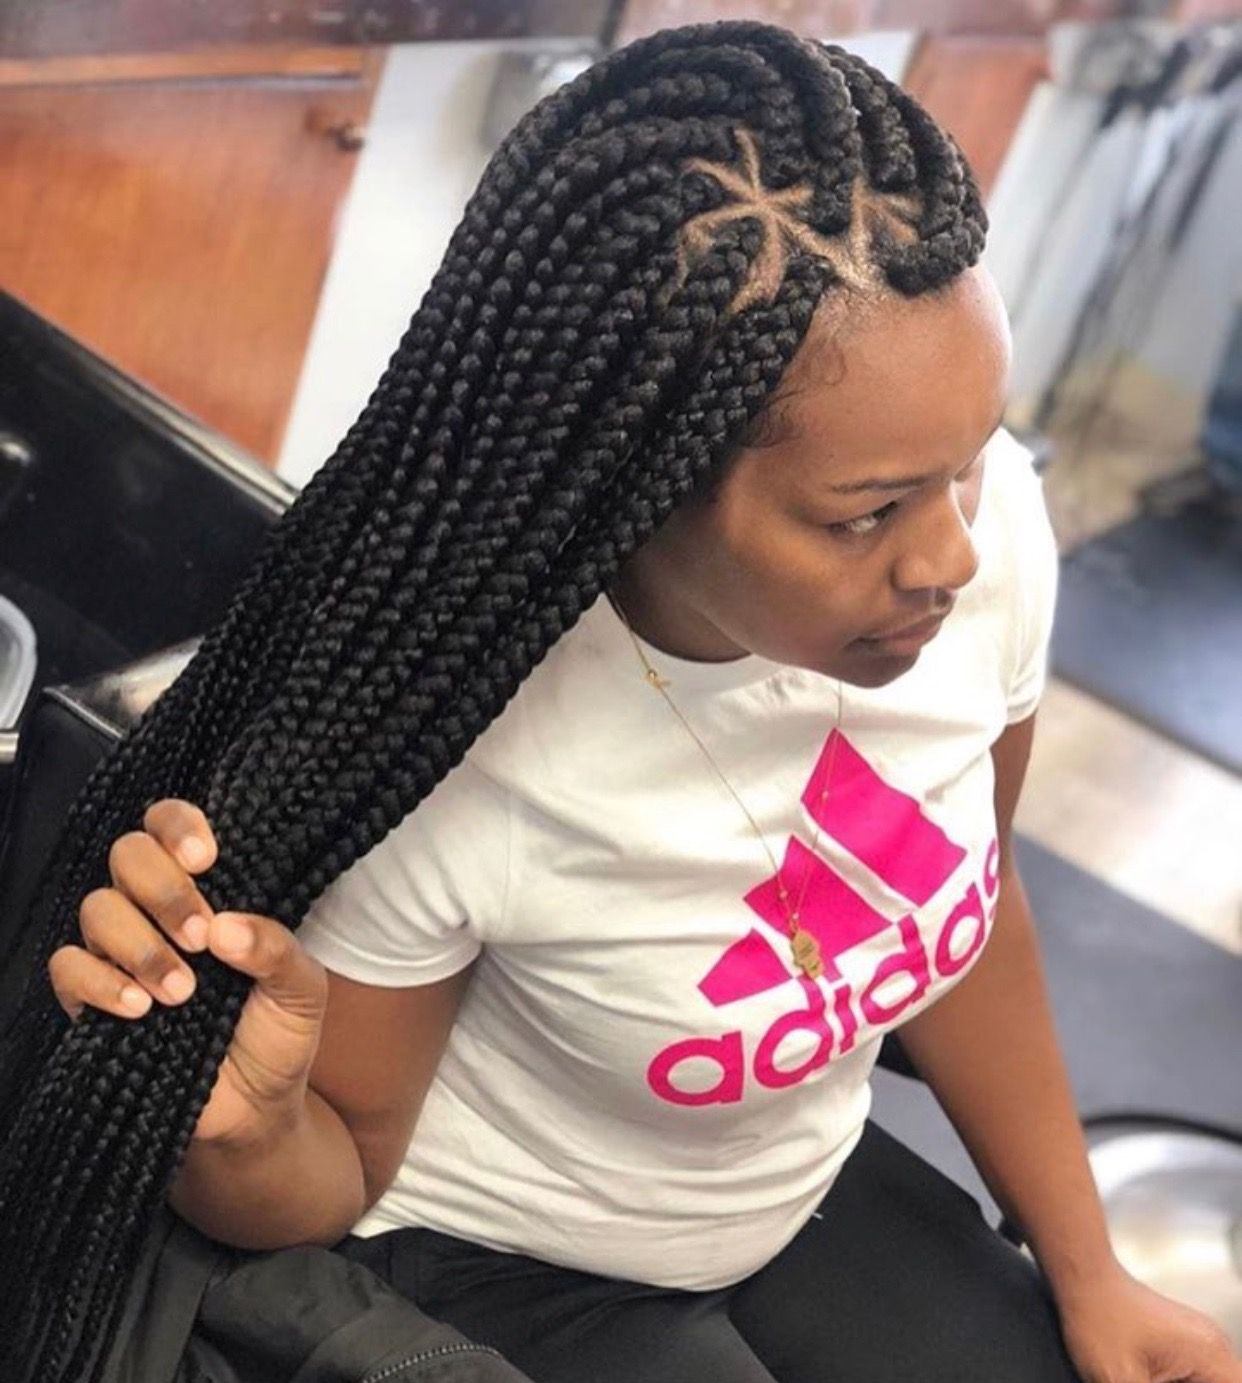 Pin By Mrs Hurt On Hair Styles Nigerian Braids Hairstyles Hair Styles Braided Hairstyles